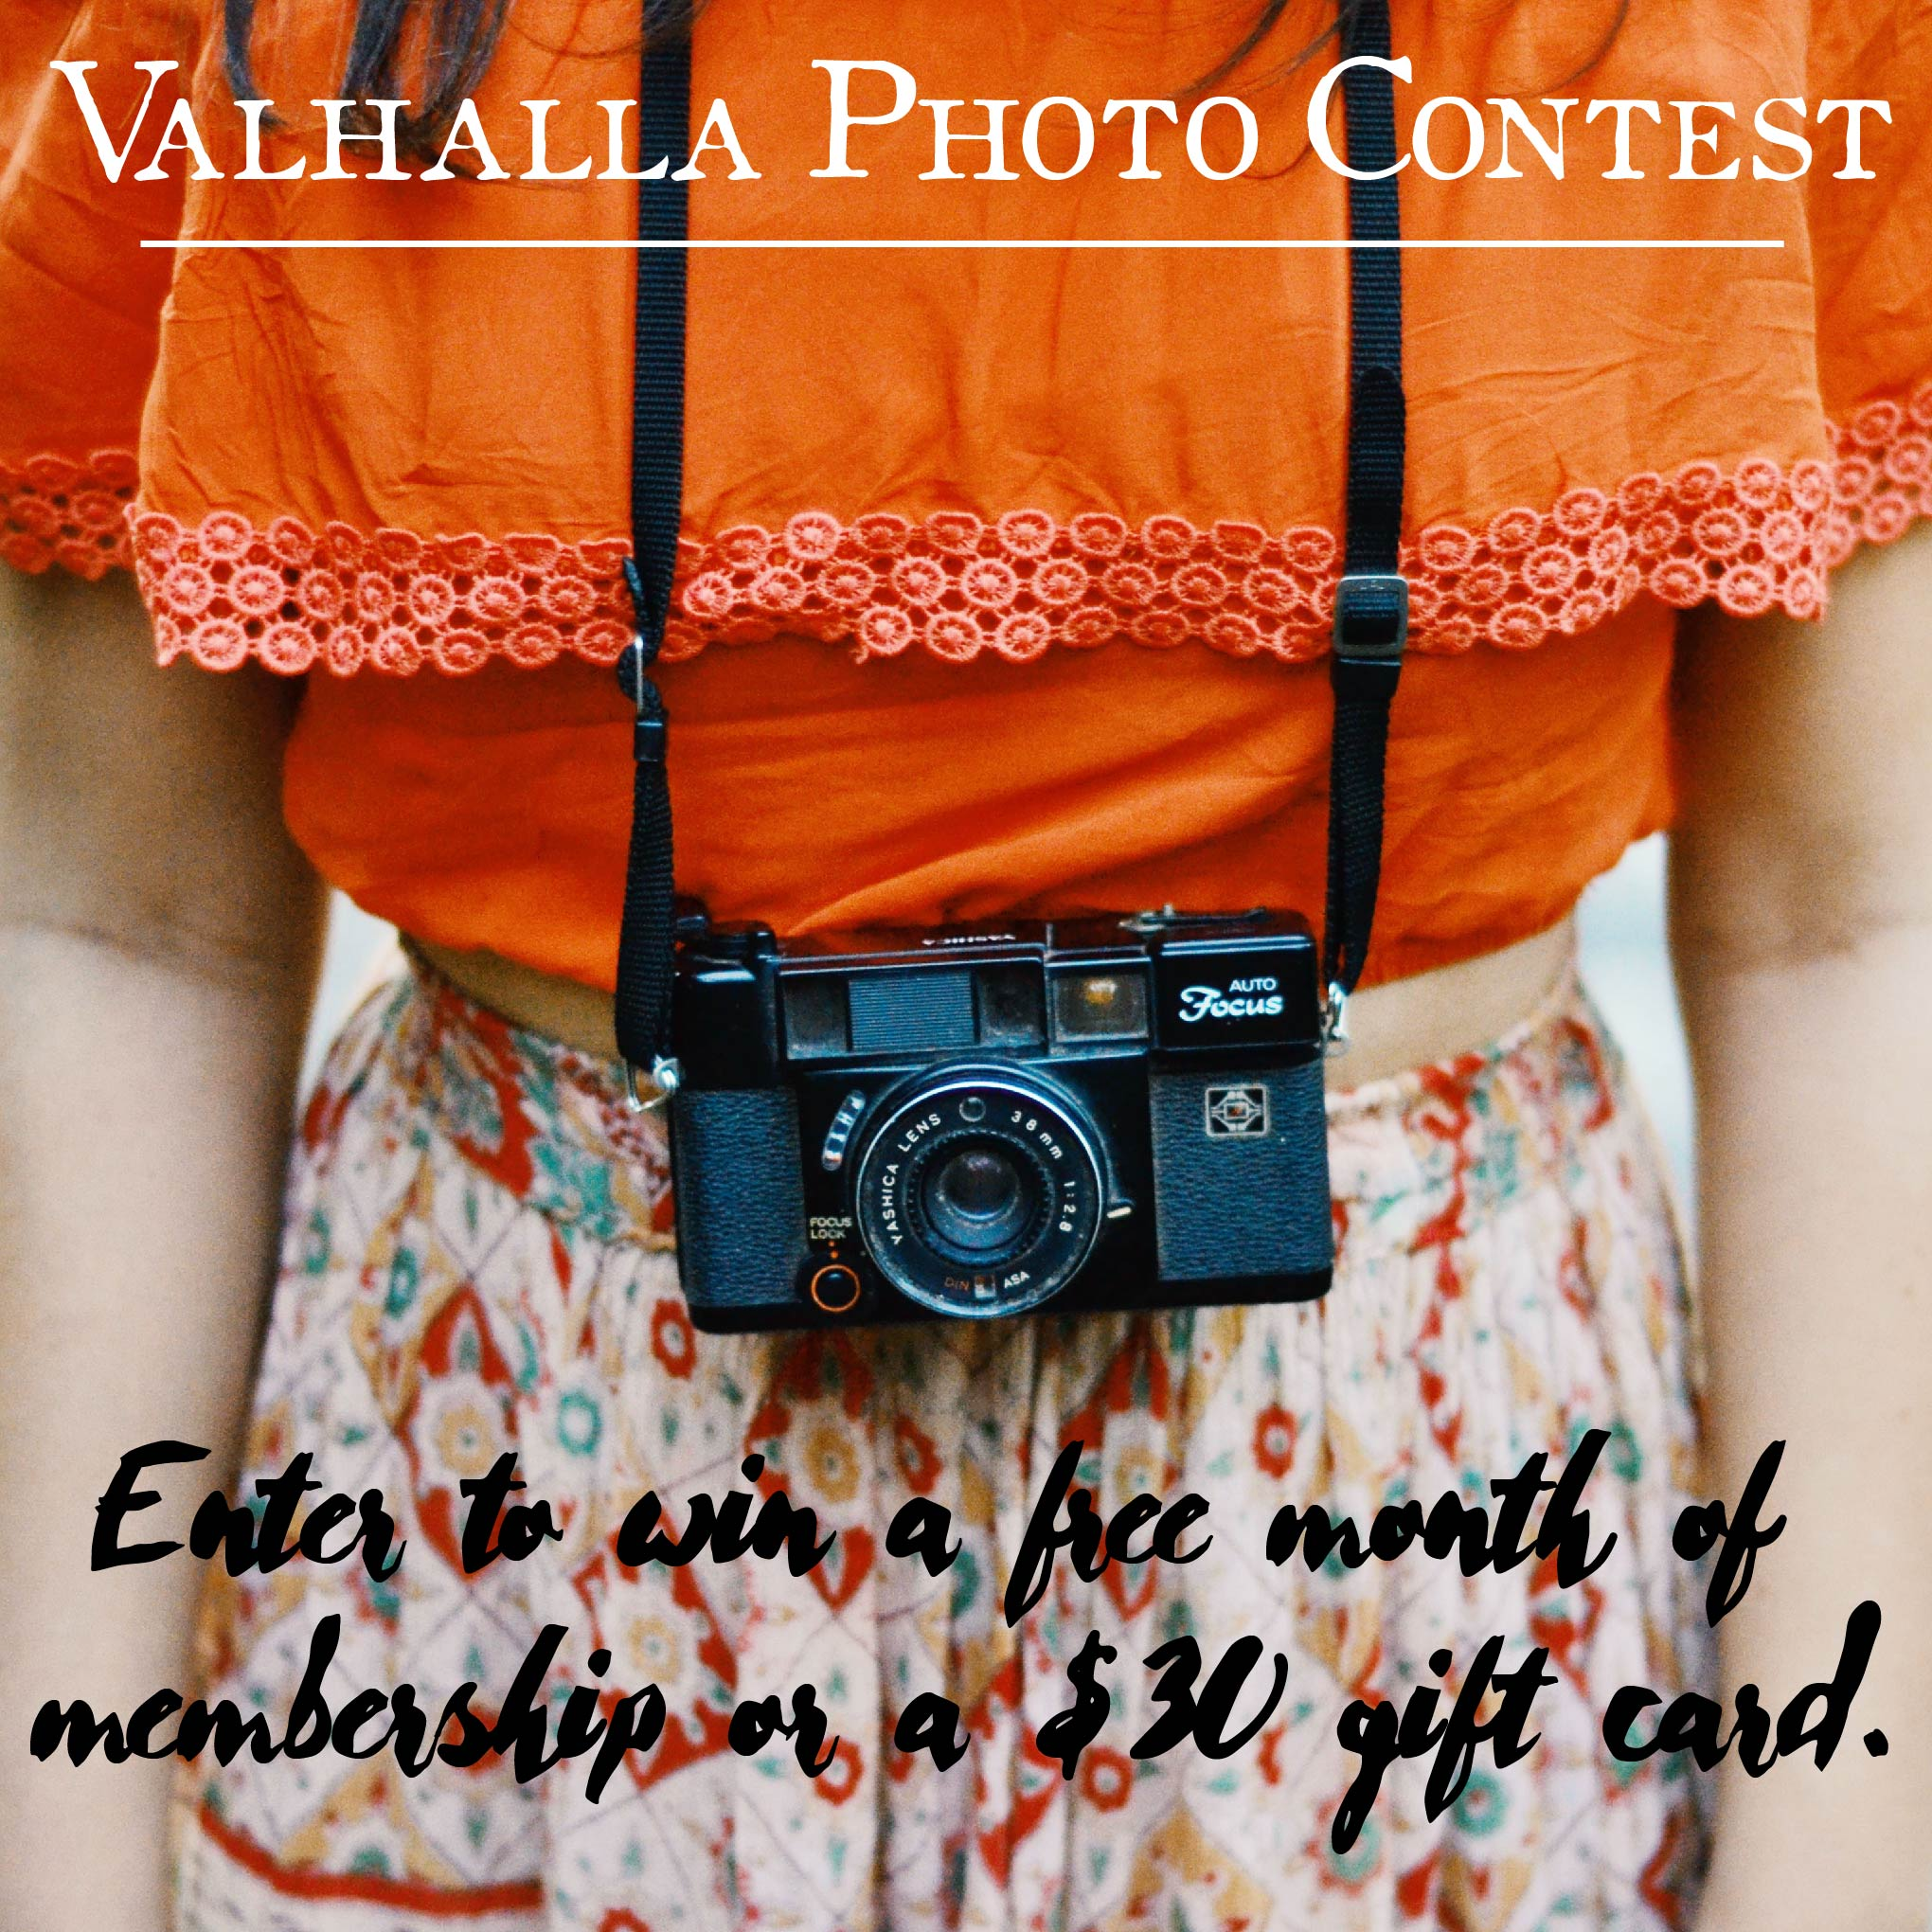 Enter Valhalla's Facebook and Instagram photo contest raffle for a chance to win a free membership for a month or a $30 gift card.